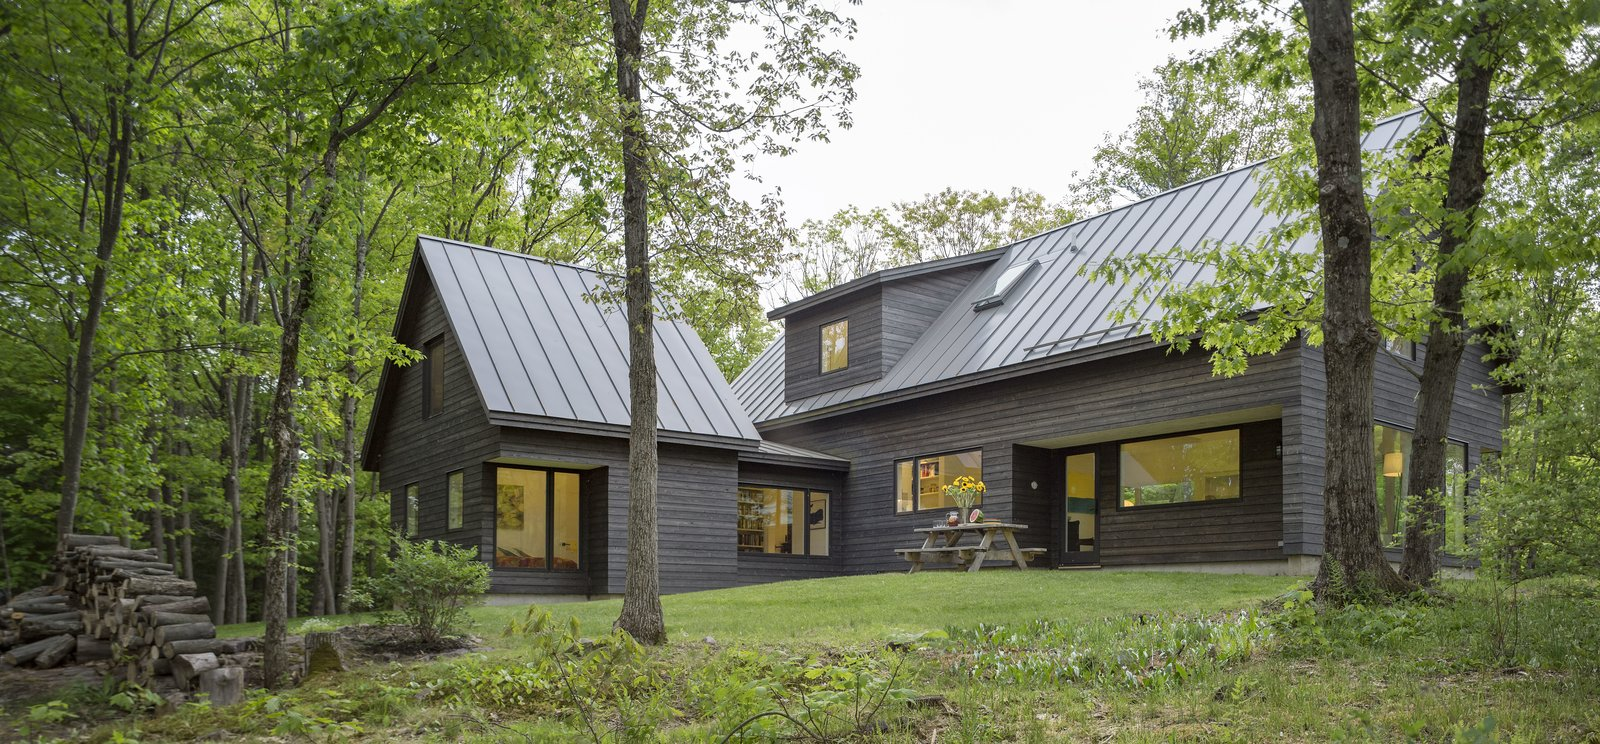 Exterior, House Building Type, Wood Siding Material, Metal Roof Material, and Gable RoofLine  Knoll House by Elizabeth Herrmann Architecture + Design